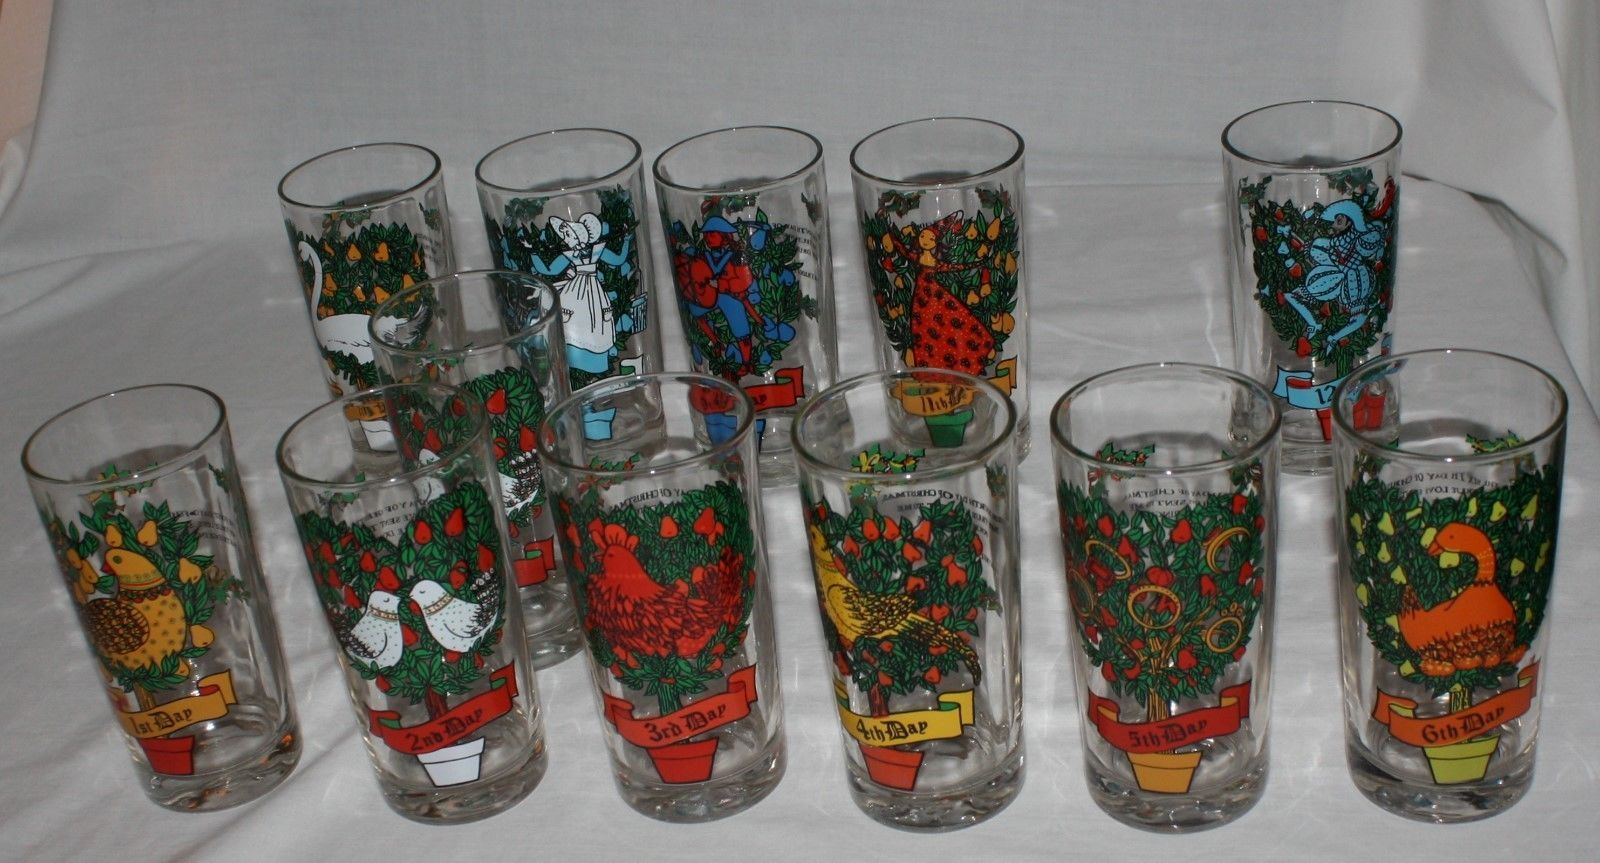 12 days of christmas glasses tumblers replacements 5 12 12 oz you choose